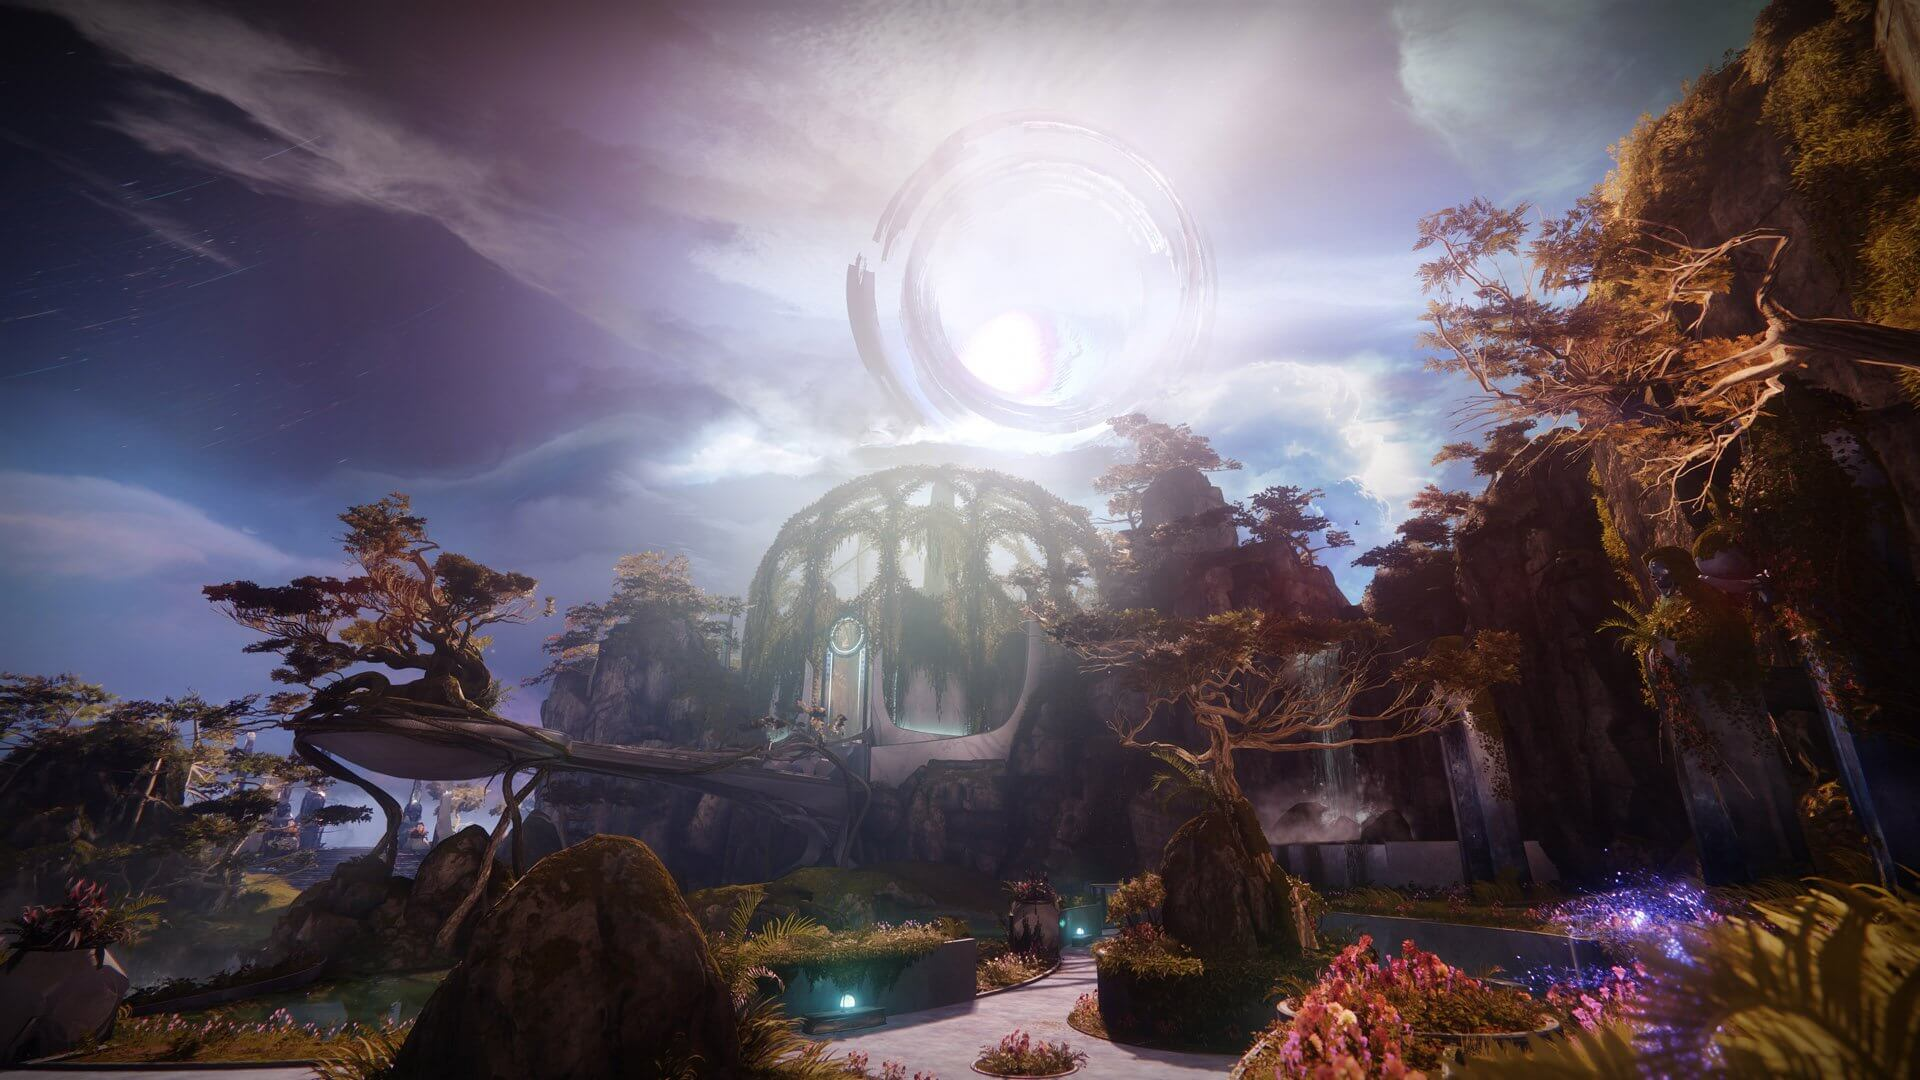 Destiny players attempt to end the curse on the Dreaming City